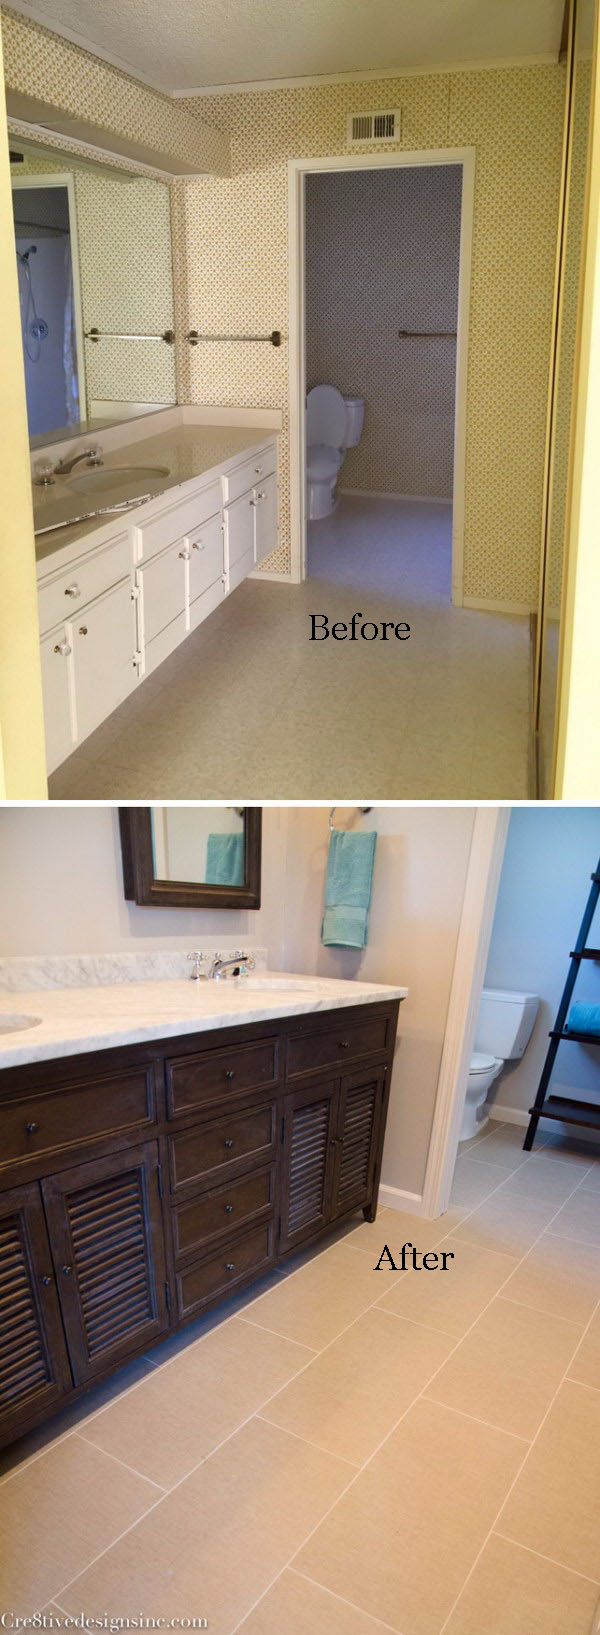 From Single Sink to Double Sink Bath Remodel.